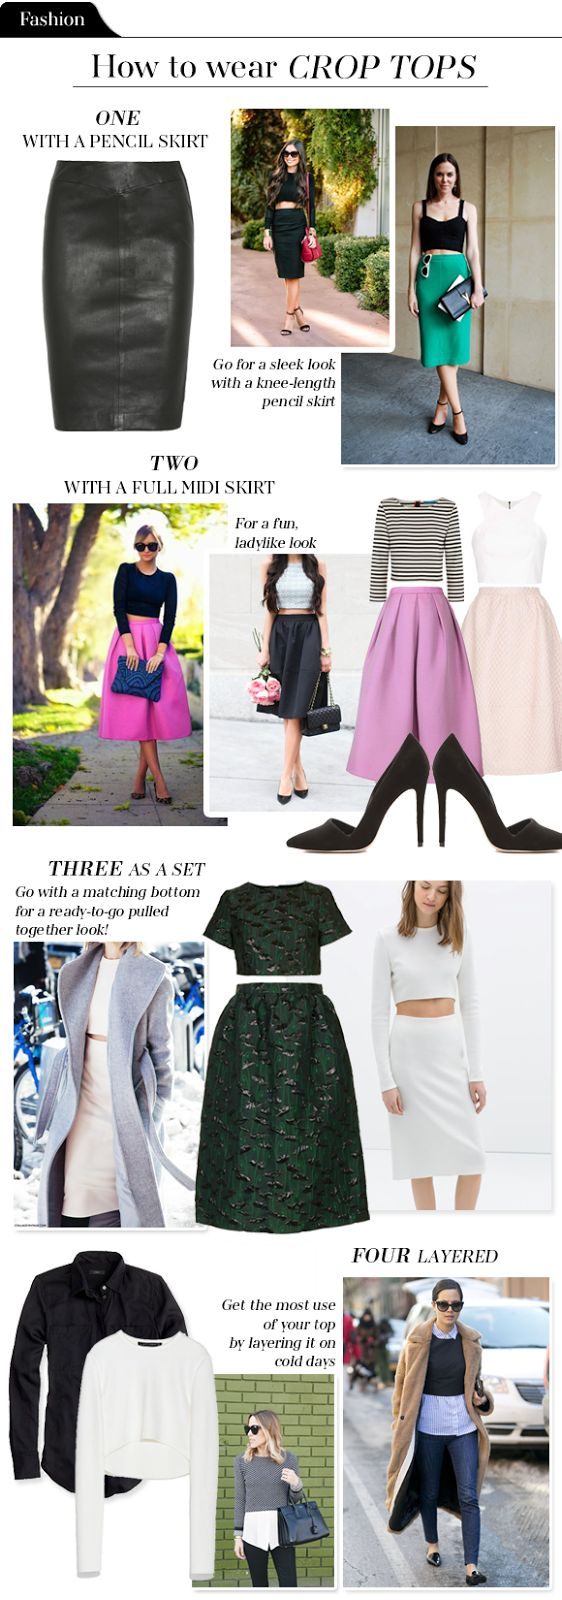 The Vault Files: Fashion File: How to wear crop tops